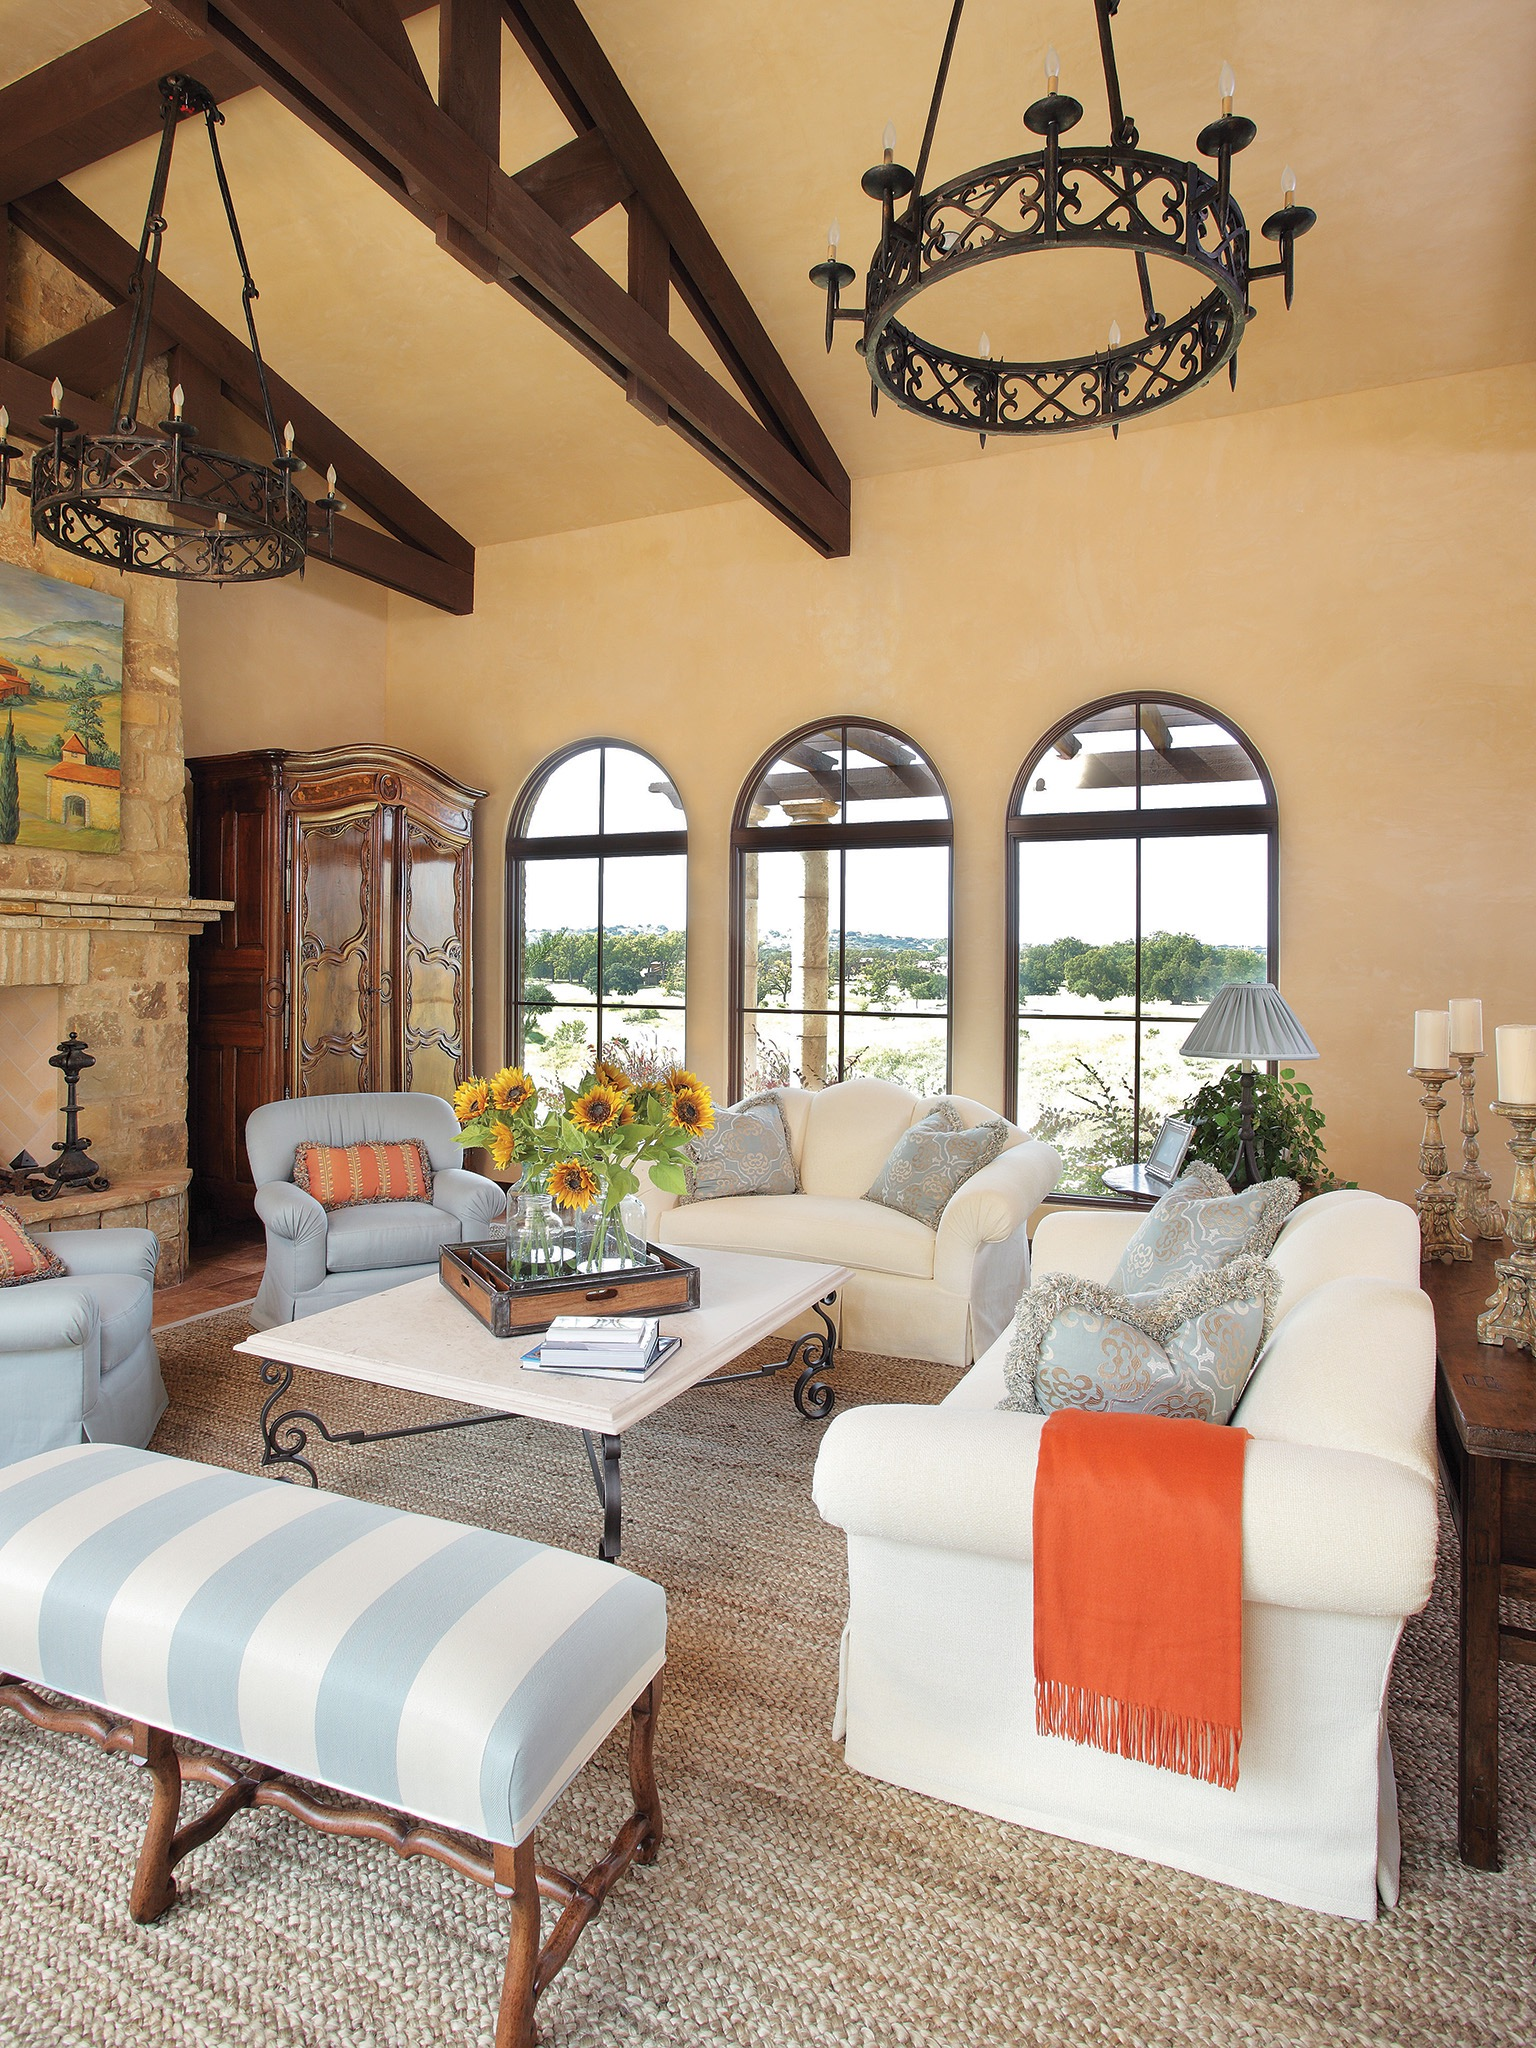 Traditional Italian Living Room With Iron Chandeliers, Arched Windows And A Stone Fireplace (Image 19 of 20)